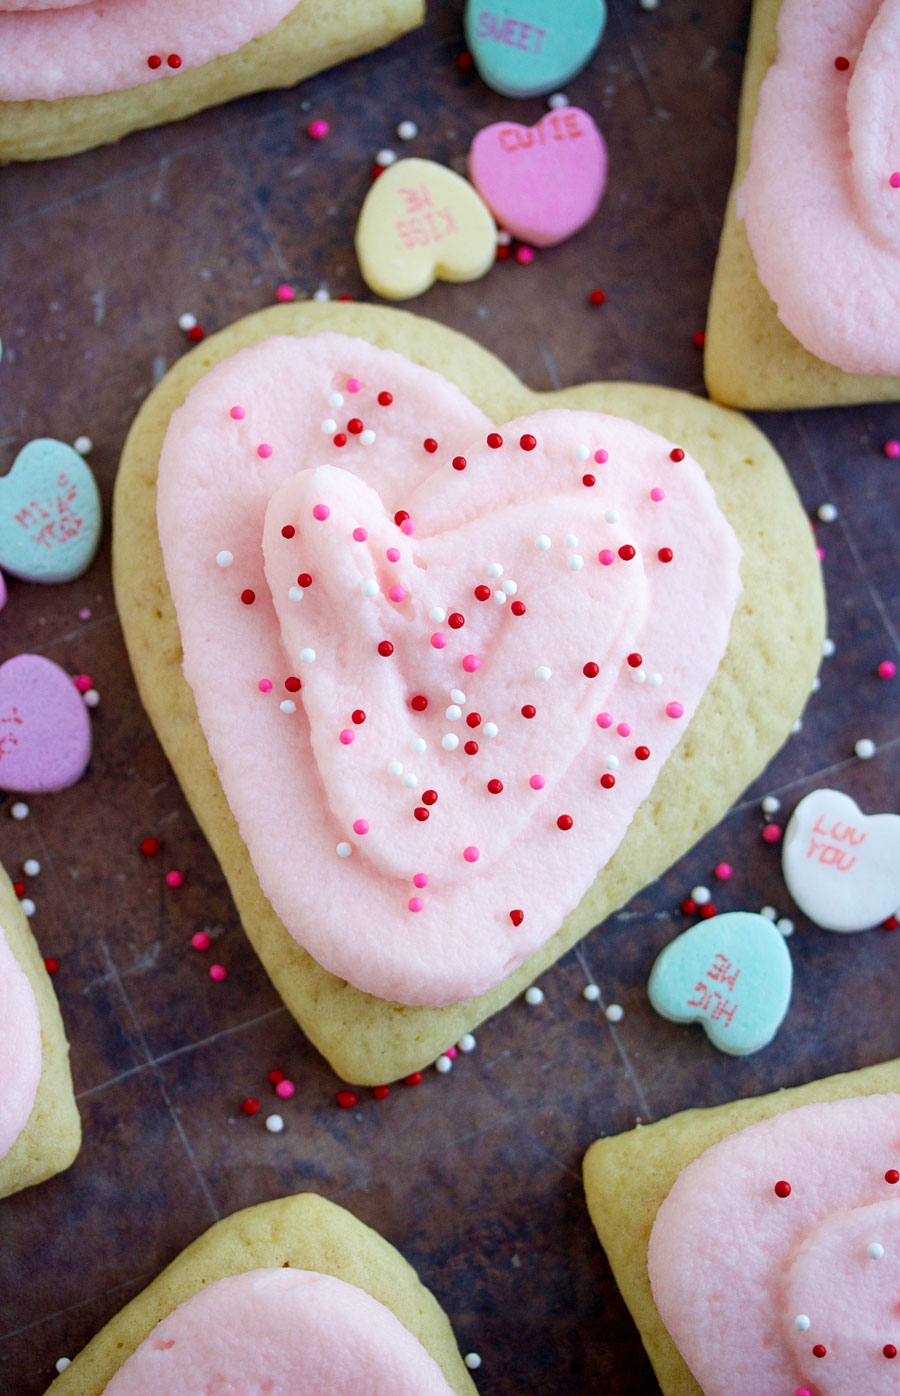 overhead shot of a heart-shaped sugar cookie with pink frosting and sprinkles